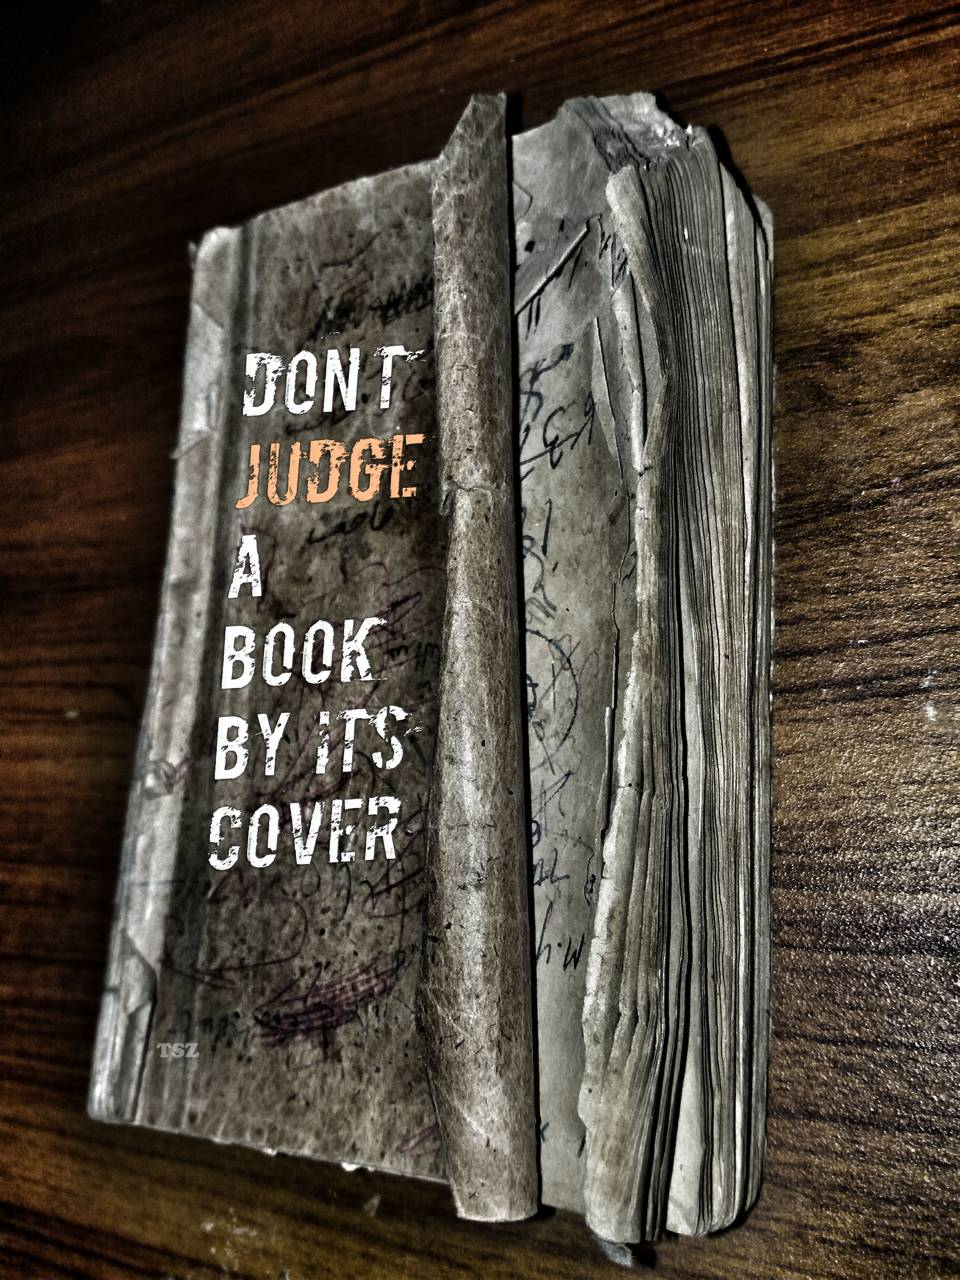 DONT JUDGE A BOOK BY